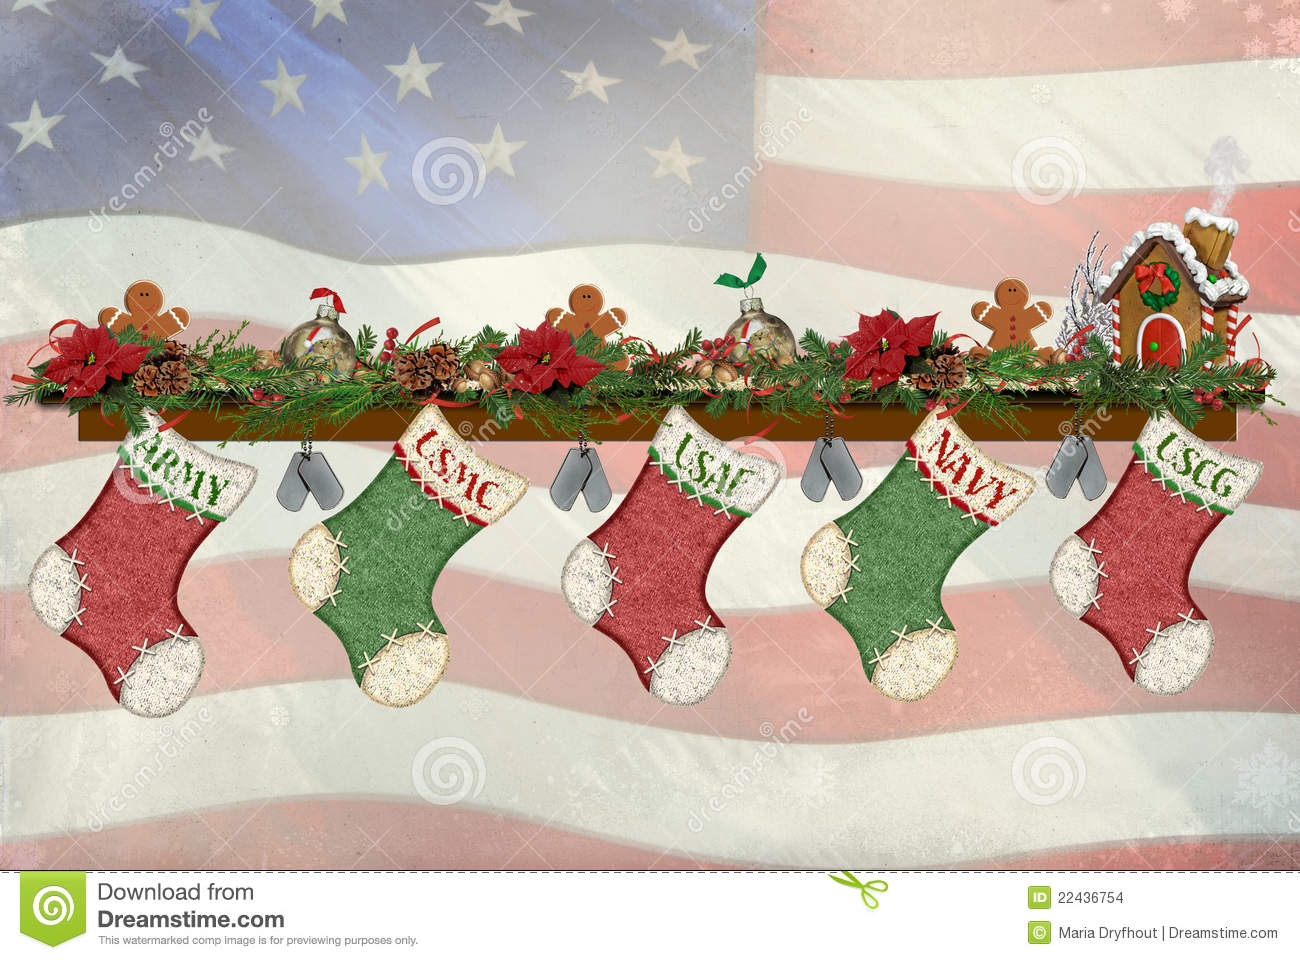 Military Christmas Stockings Stock Images - Image: 22436754